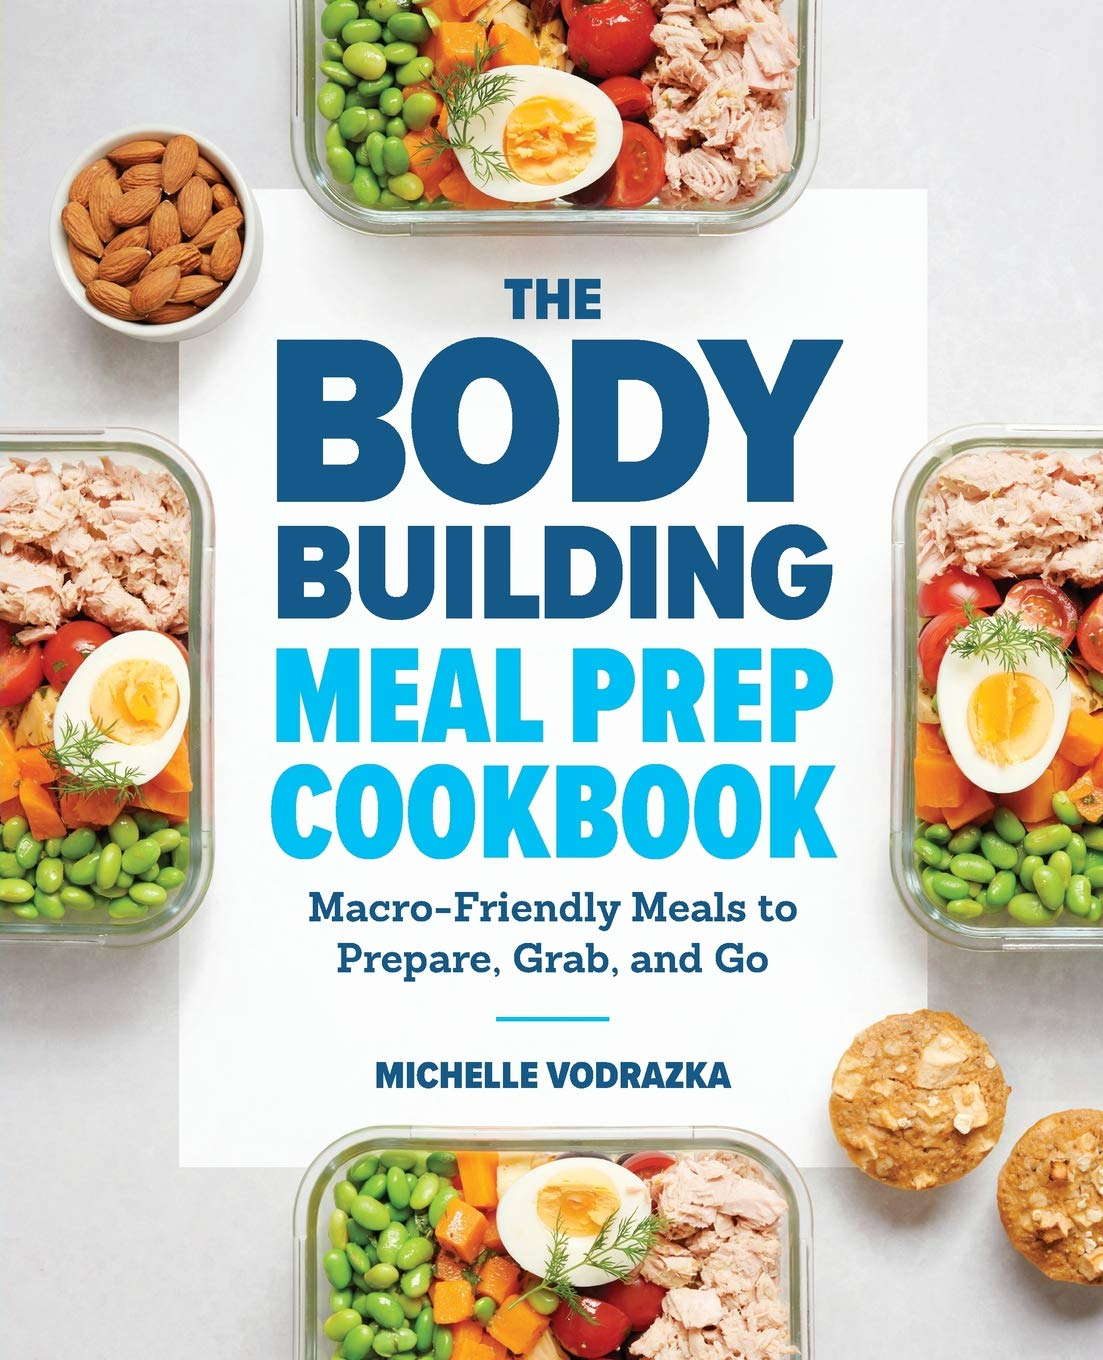 The Bodybuilding Meal Prep Cookbook  Macro Friendly Meals To Prepare Grab And Go